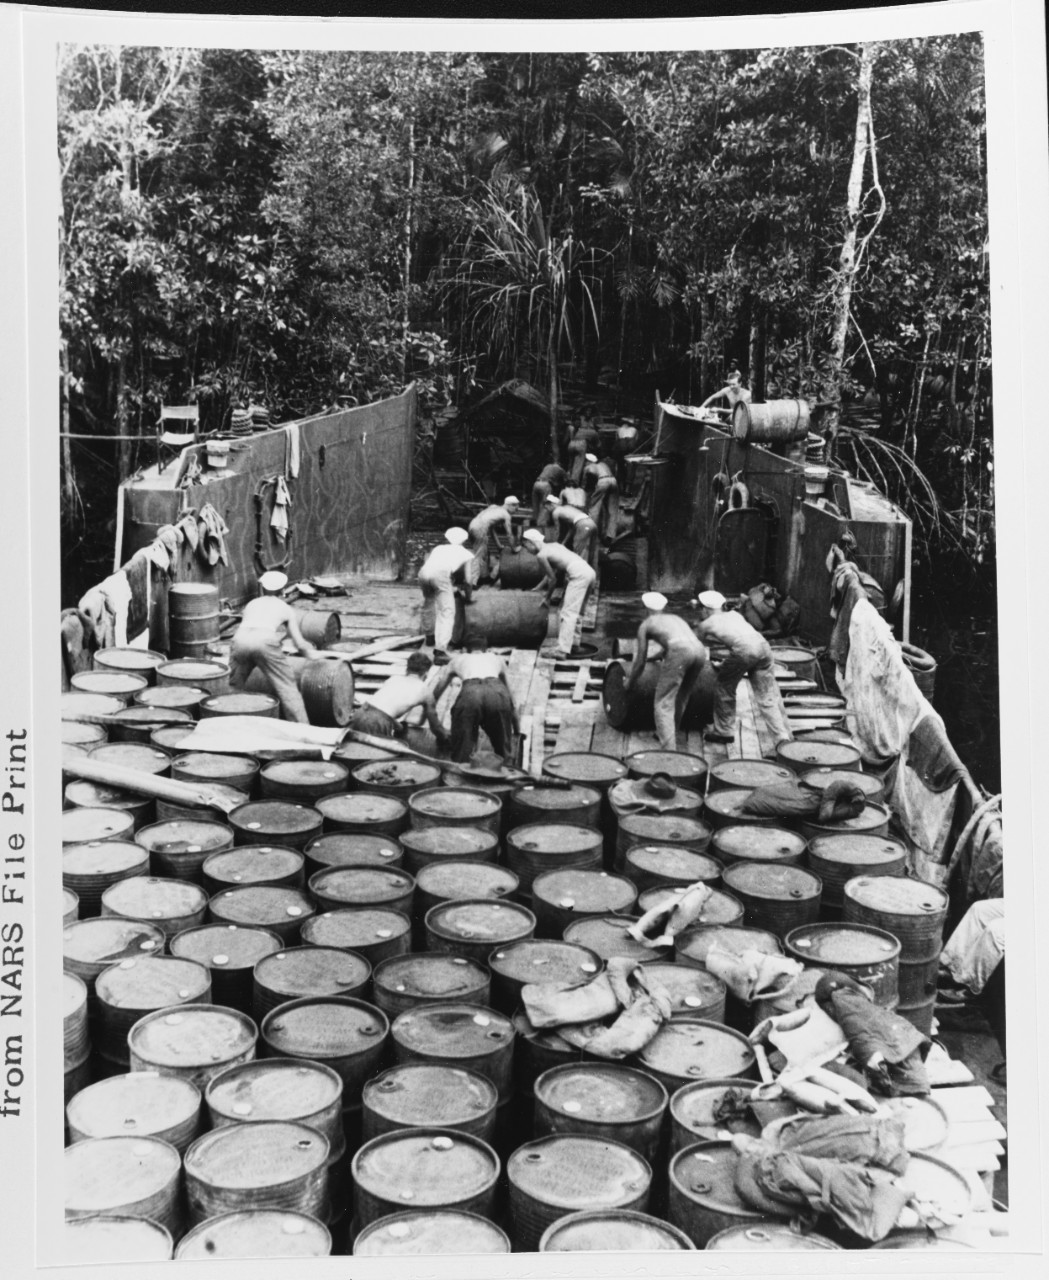 Morobe PT Boat Base, New Guinea